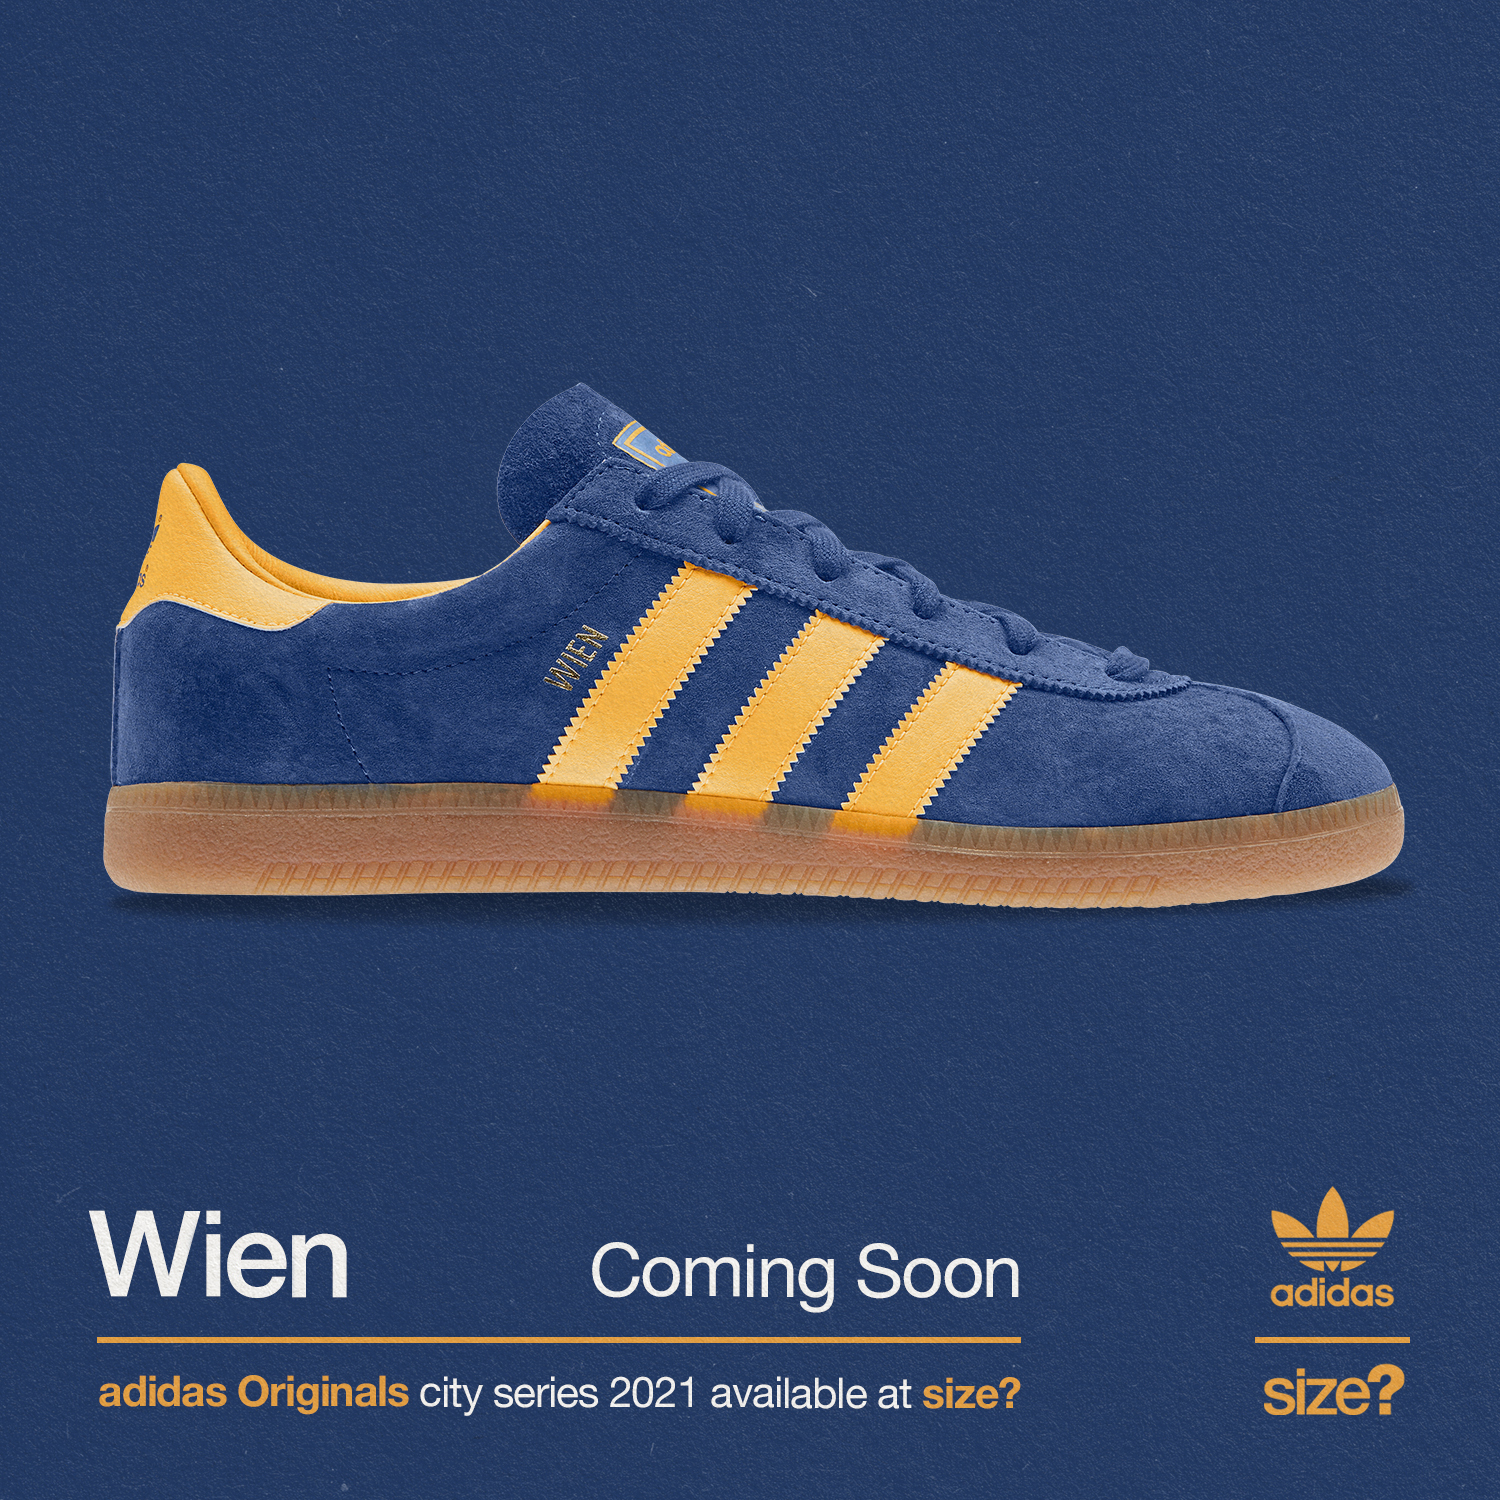 The adidas Originals Wien joins the City Series